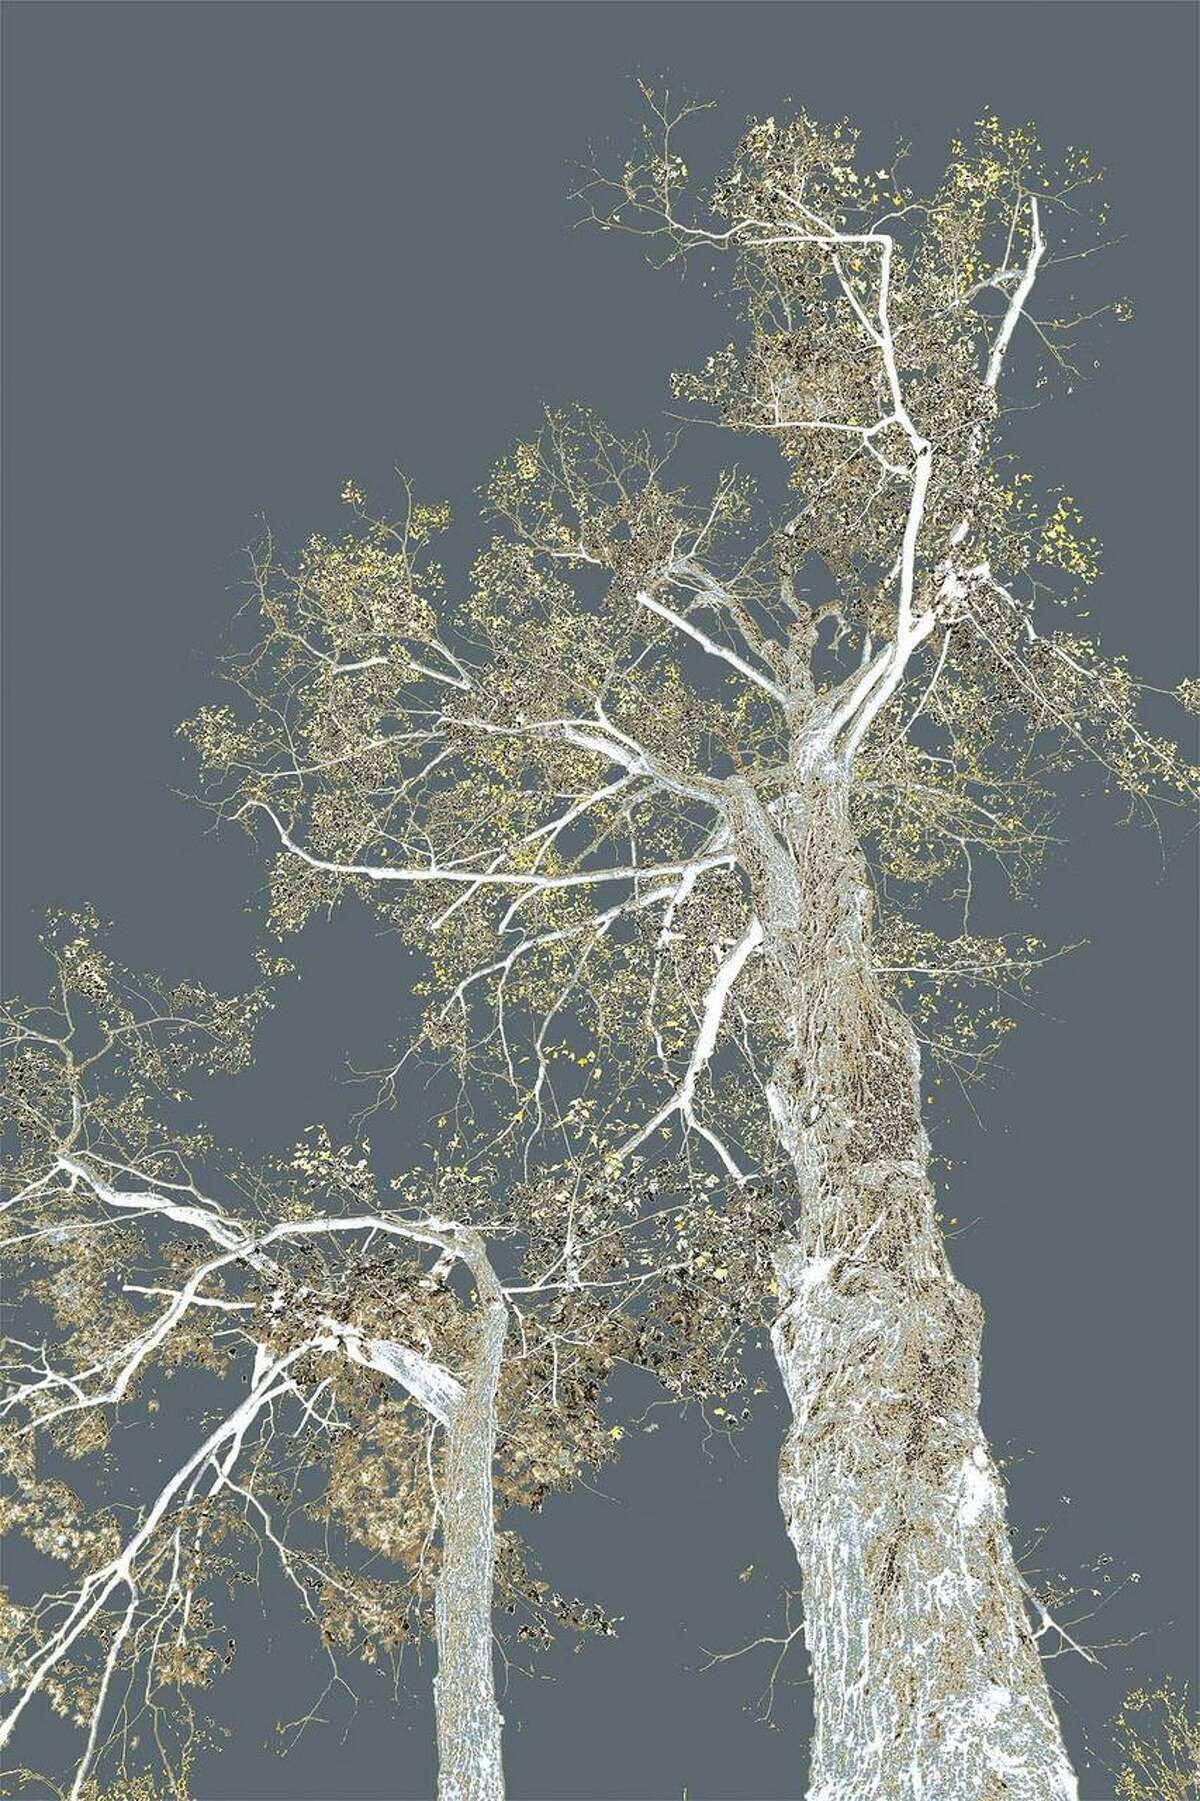 Two Stories is another digital photo of trees by Wilton artist Nancy C. Woodward.